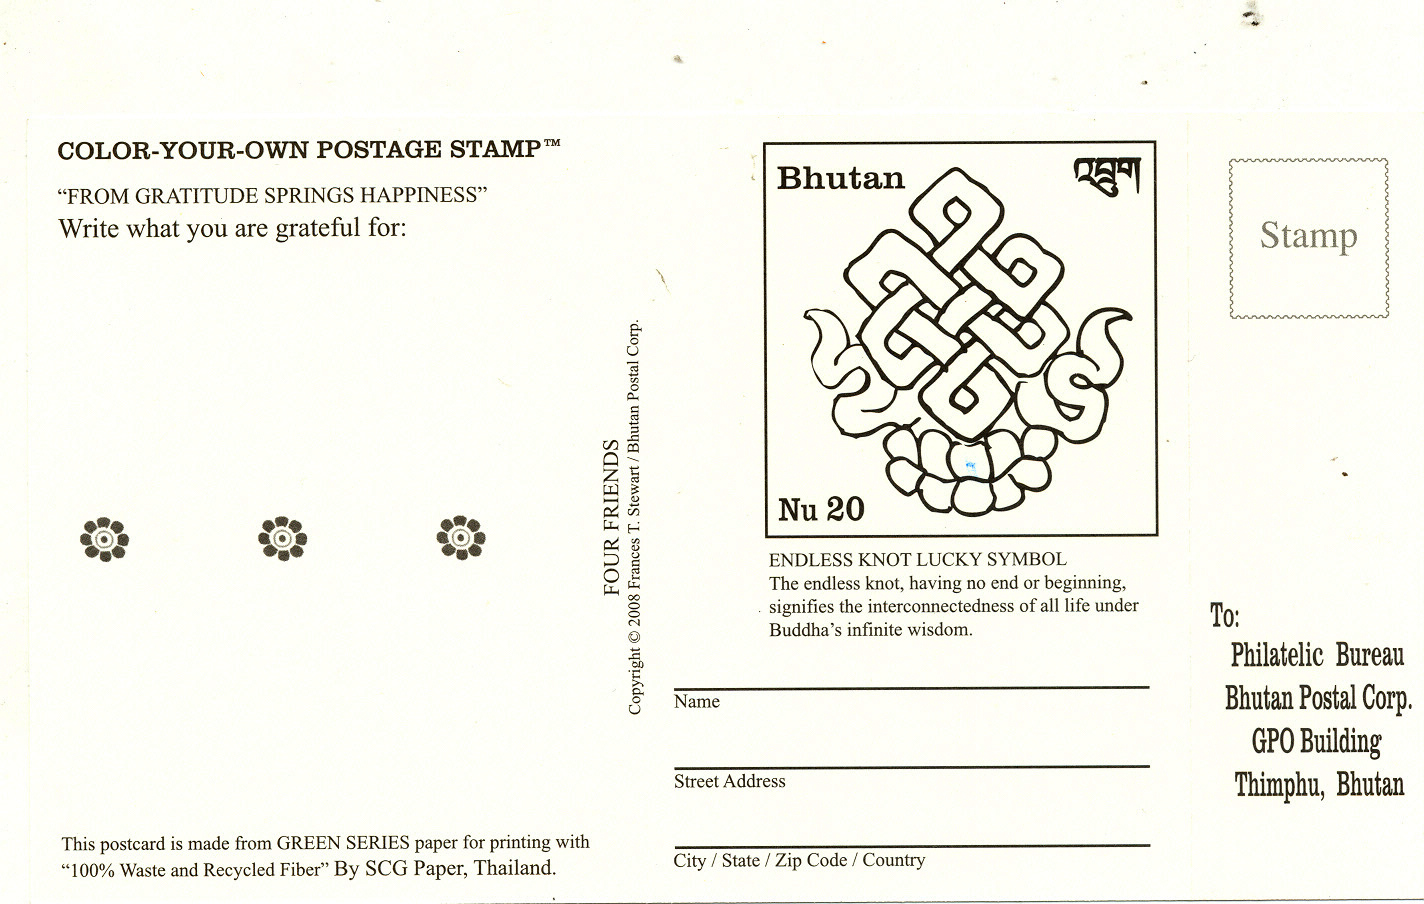 Postage stamps and postal history of bhutan wiki for Post office design your own stamps